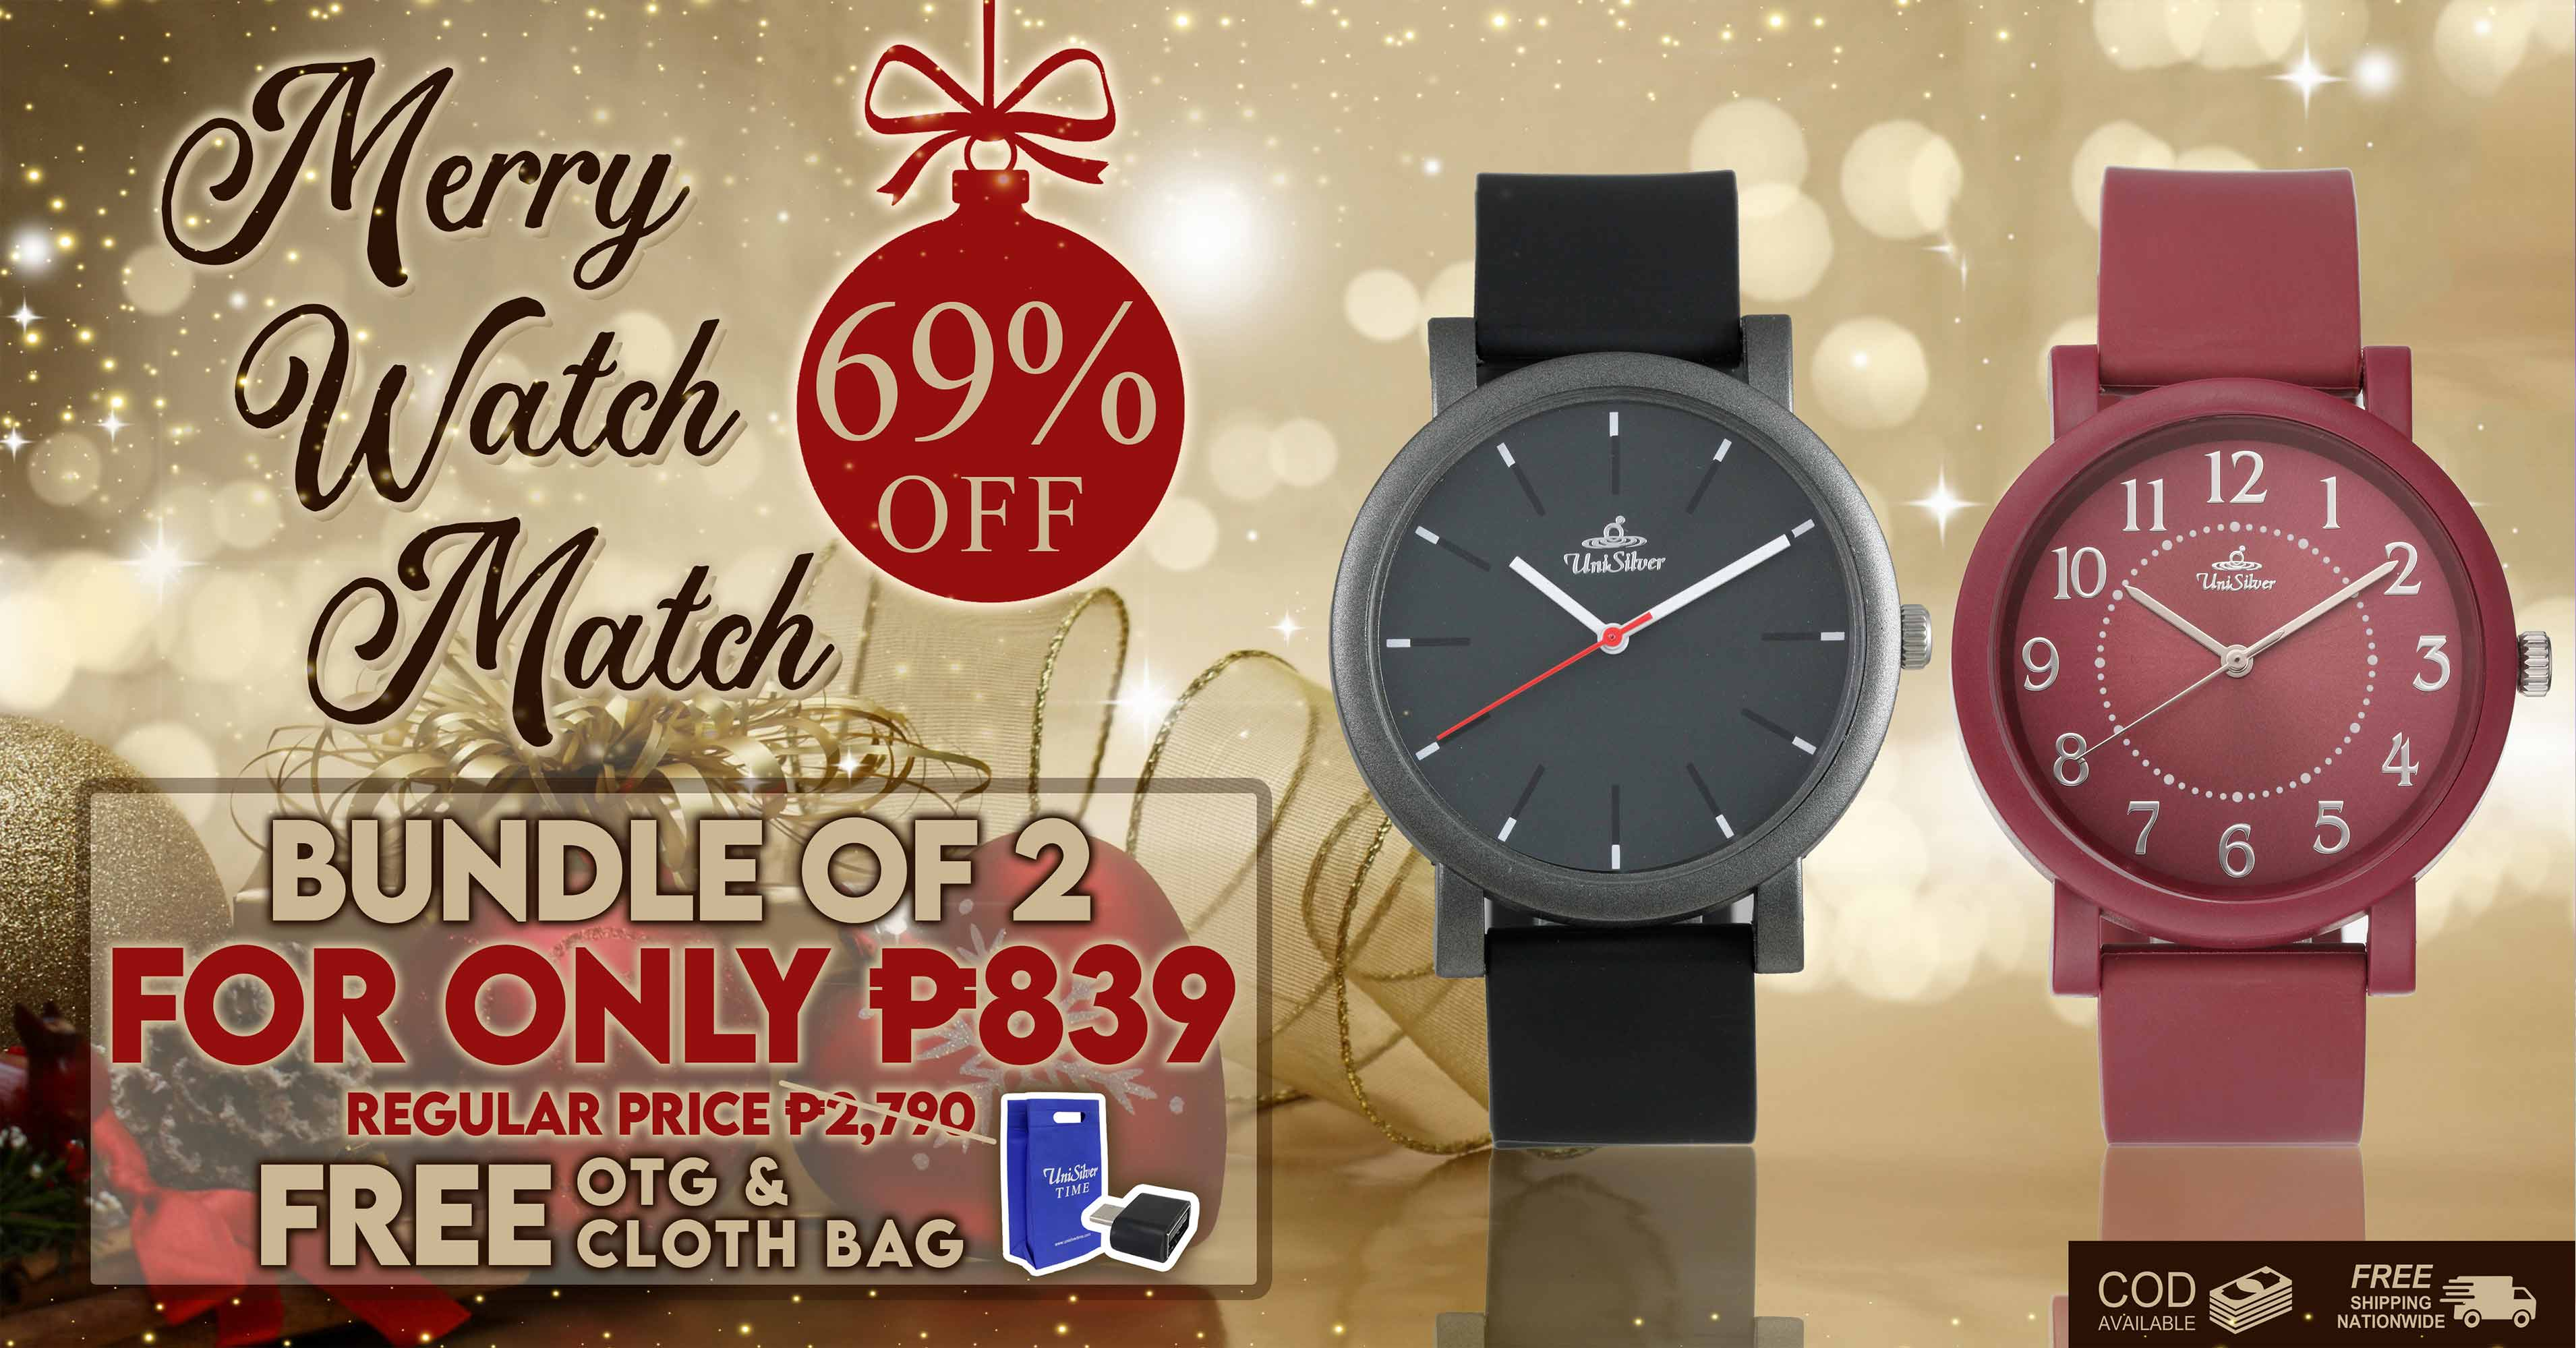 Christmas extended!  Here's a Merry Watch Match Sale from UniSilver TIME!  Bundle of two watches for PHP839 only!  That's 69% off from the regular price.  Plus you'll also get FREE OTG and cloth bag Free shipping nationwide and cash on delivery option is available. Shop now here >>> http://bit.ly/34YeFnx